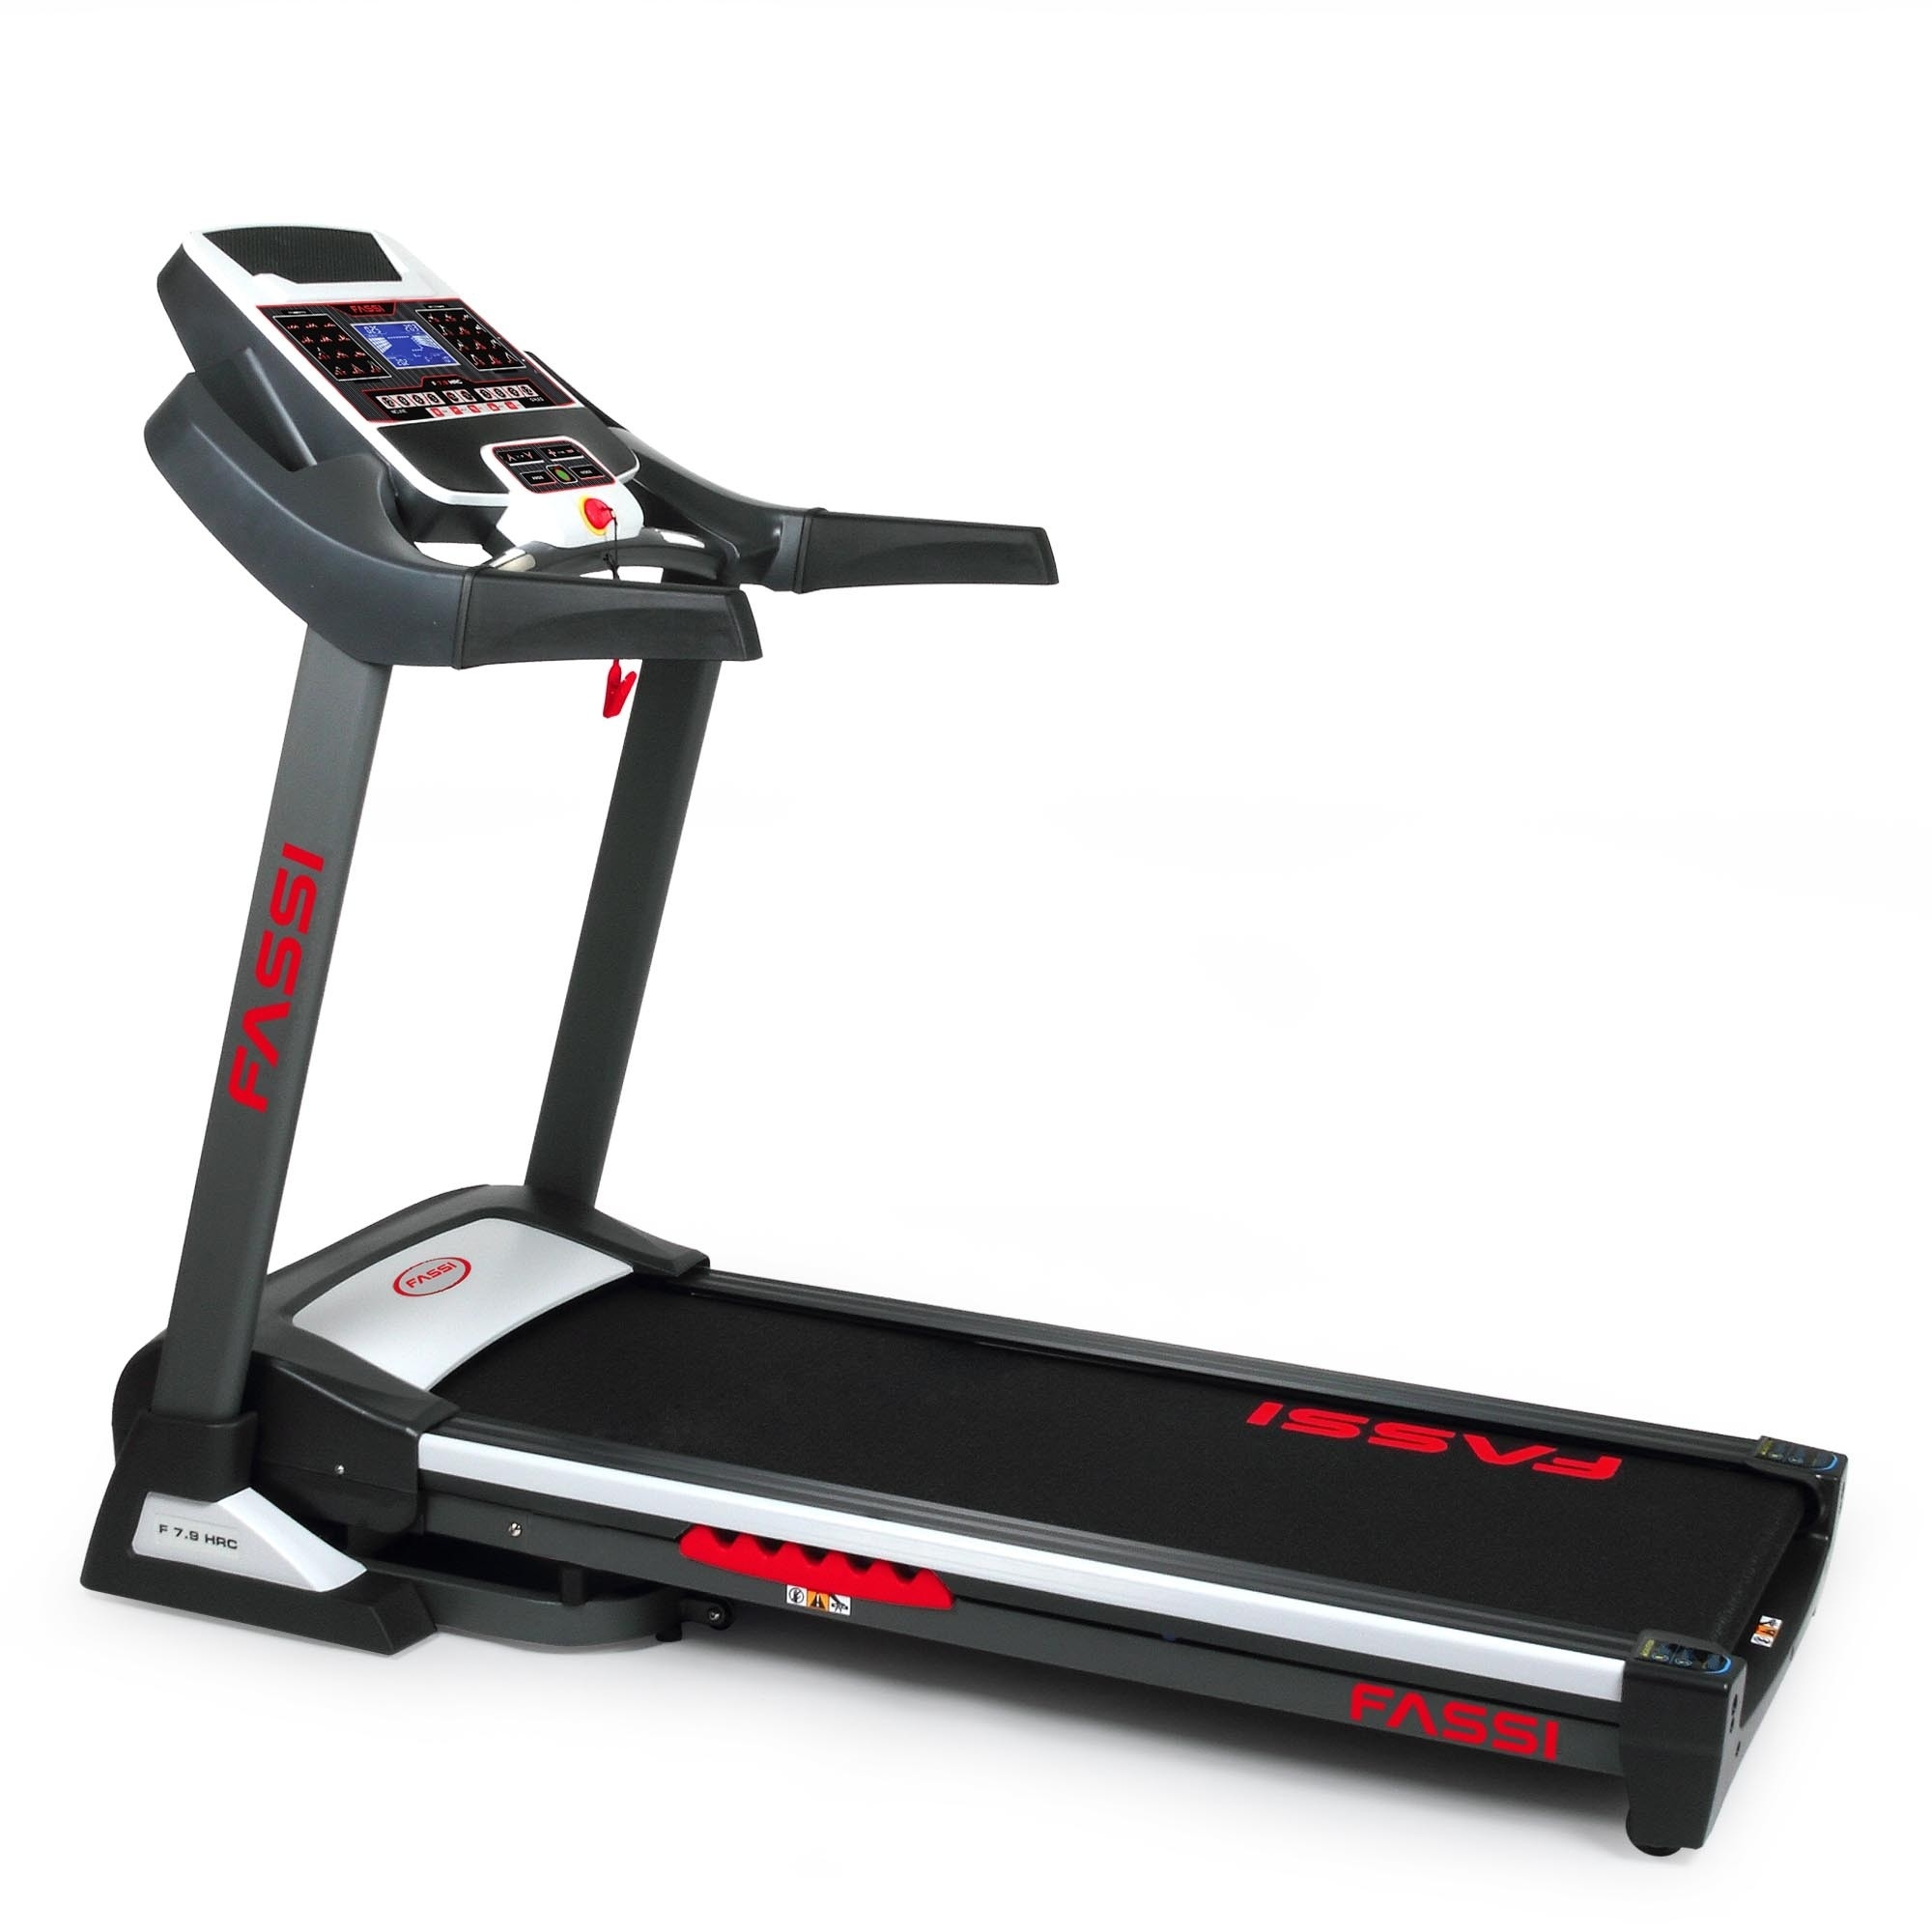 blog fitness homefitness con il tapis roulant fassi f 7 9 hrc fassi sport. Black Bedroom Furniture Sets. Home Design Ideas